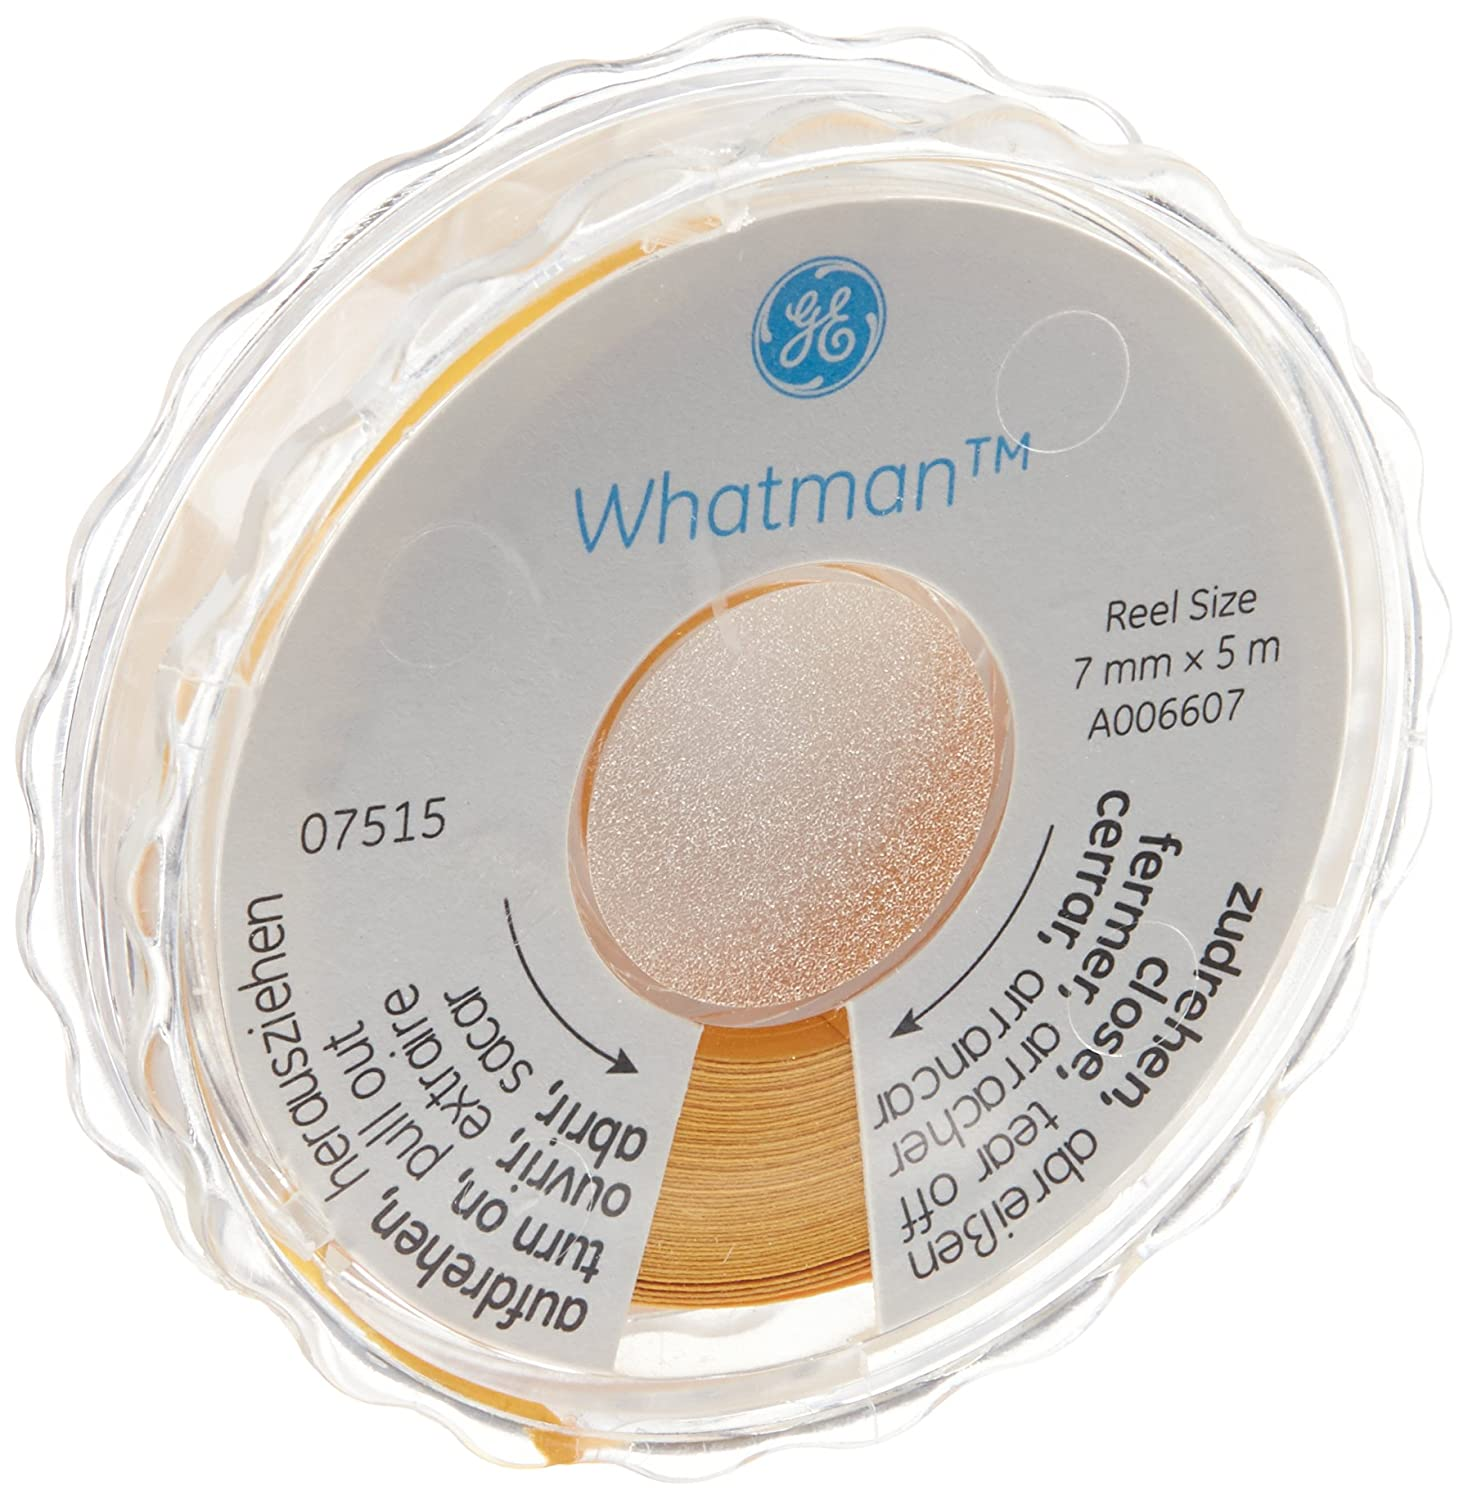 Pack of 100 GE Healthcare Life Sciences Roll GE Whatman 10362030 Universal Indicator Test Paper 1 to 11 pH Range